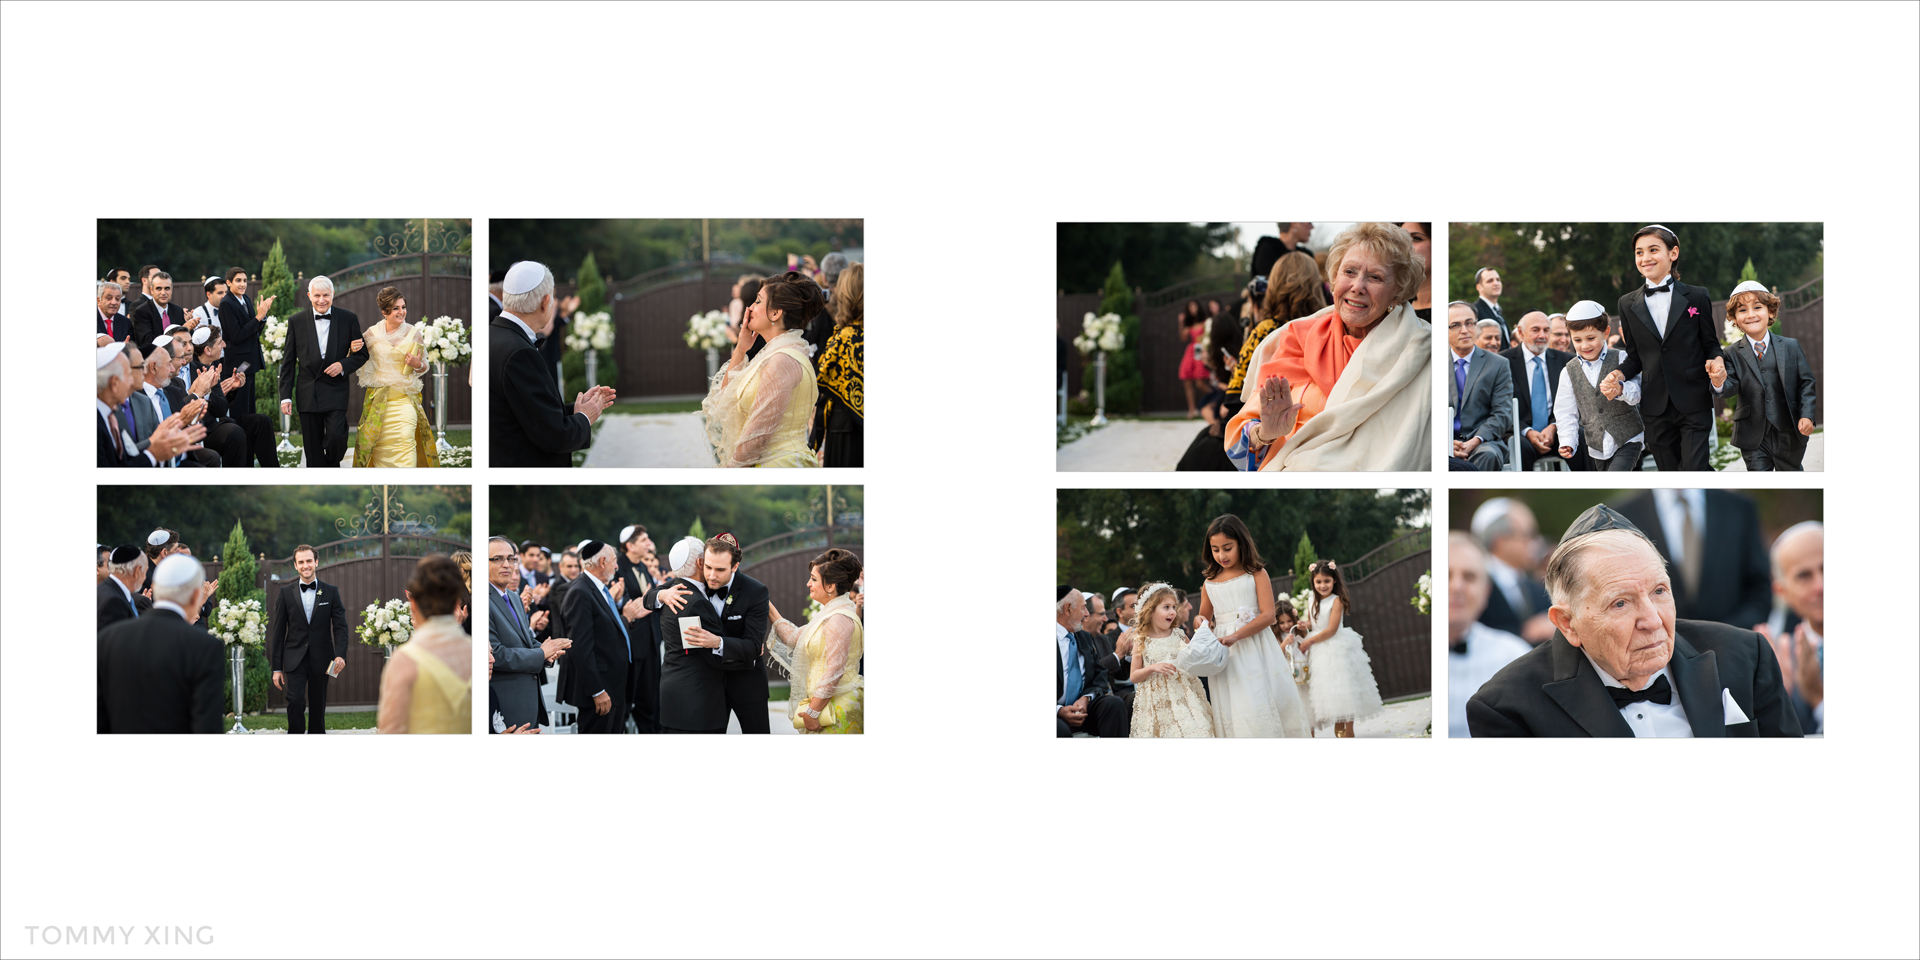 Los Angeles Jewishg Wedding at Riviera Country Club in Pacific Palisades 洛杉矶婚礼婚纱摄影师  Tommy Xing Photography 22.jpg